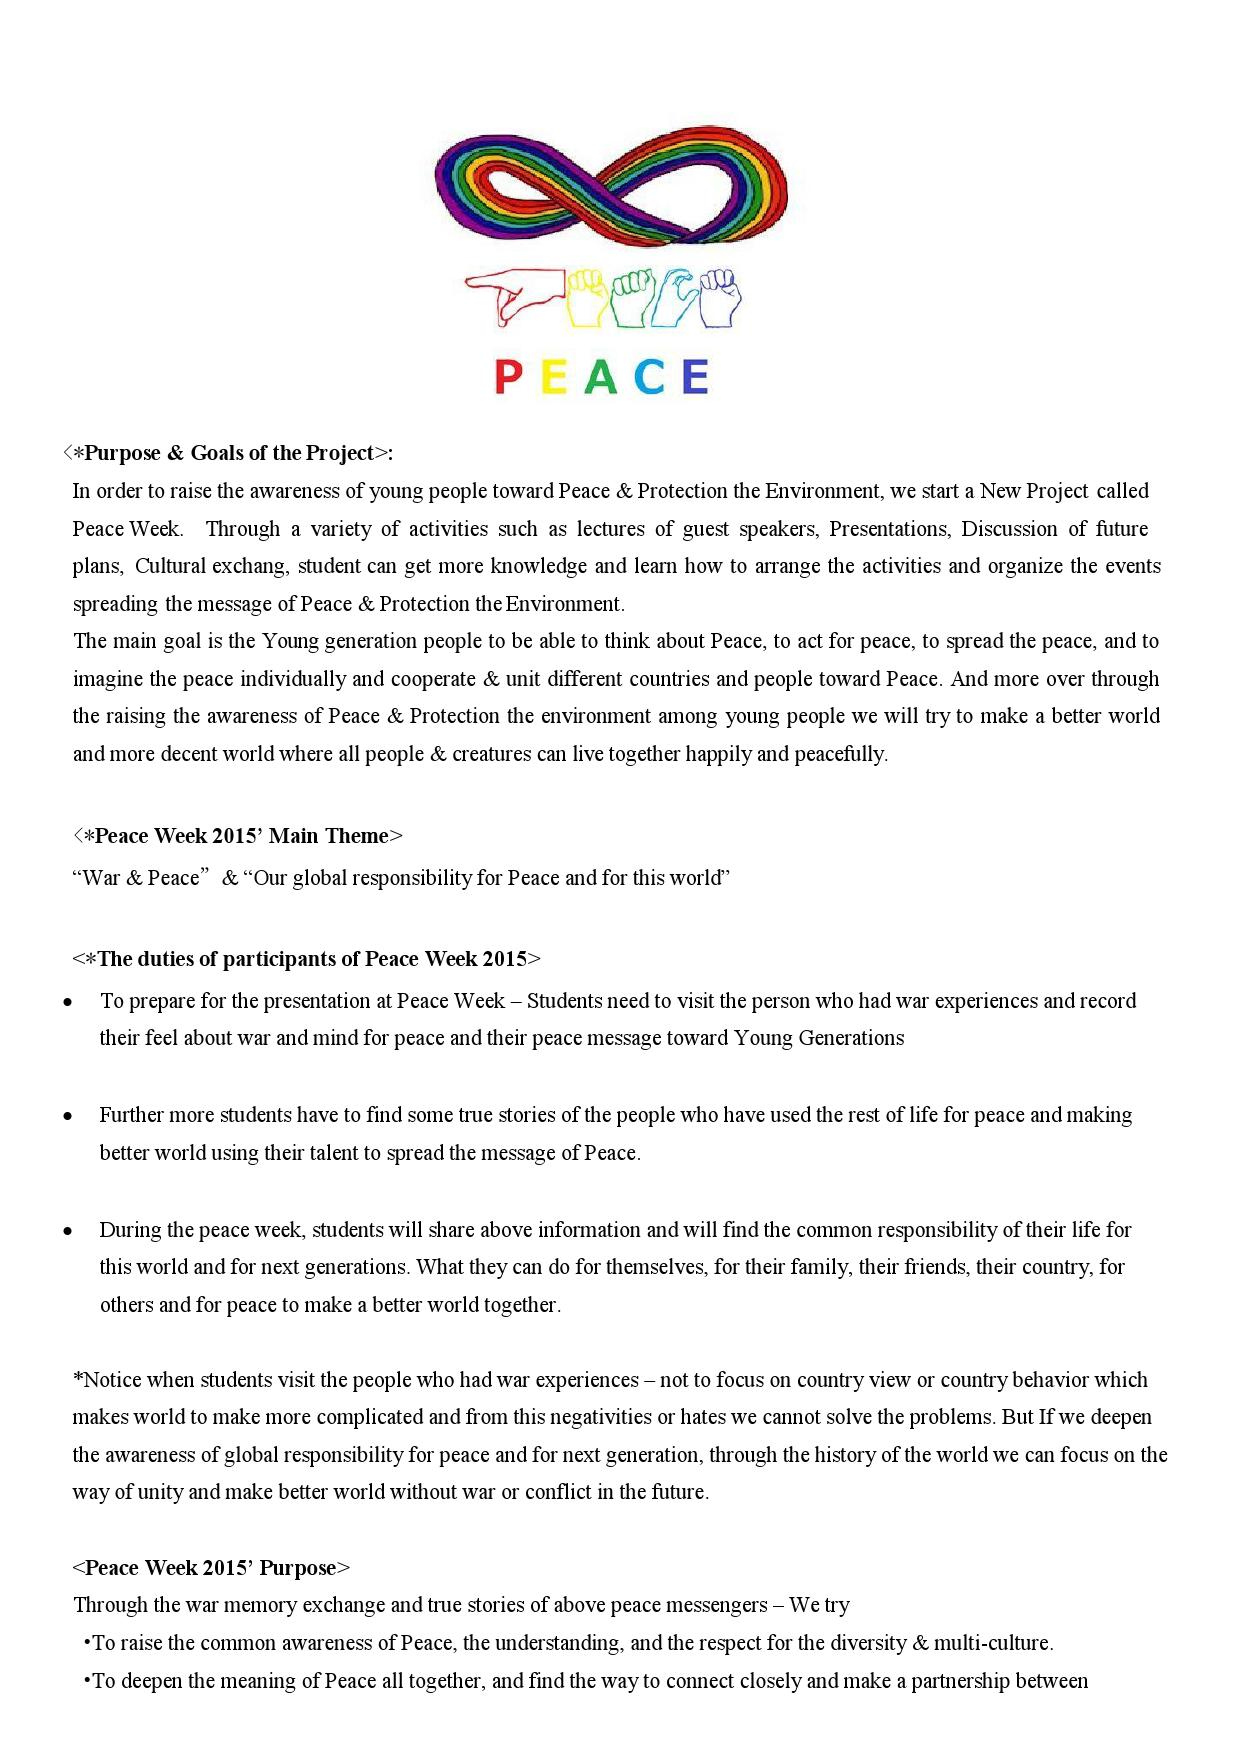 Announcement of recruitment for participants of Peace Week 2015